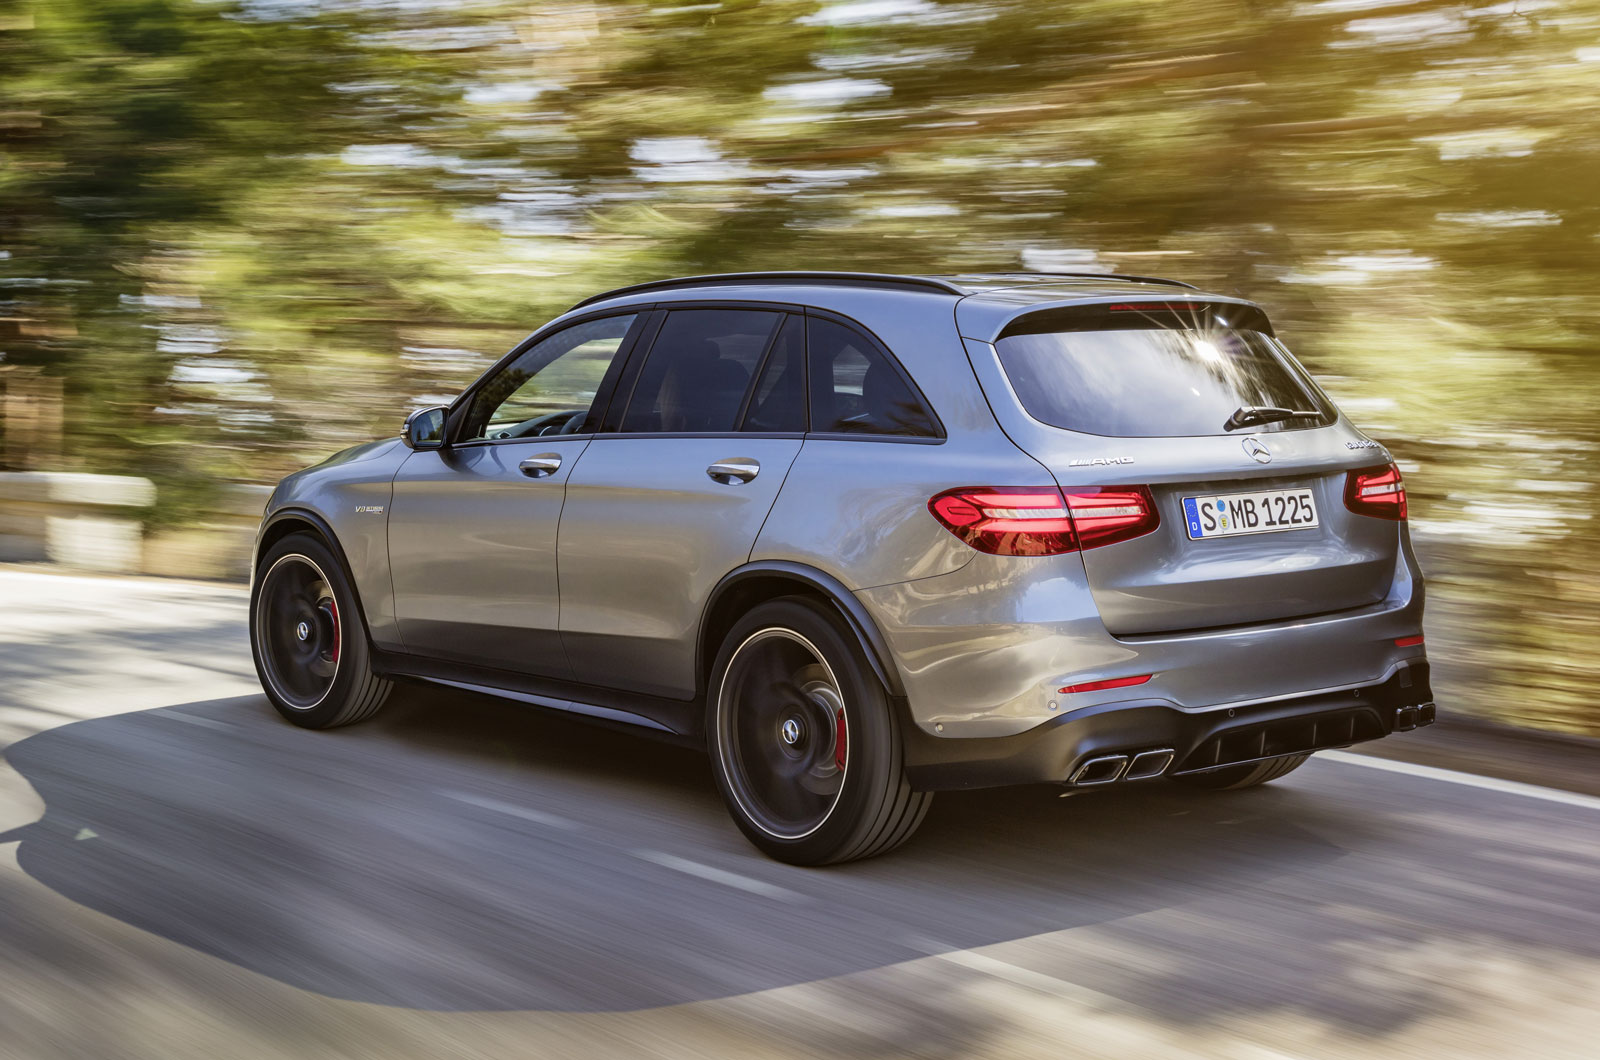 mercedes-amg glc 63 and glc 63 coupe pricing revealed | autocar